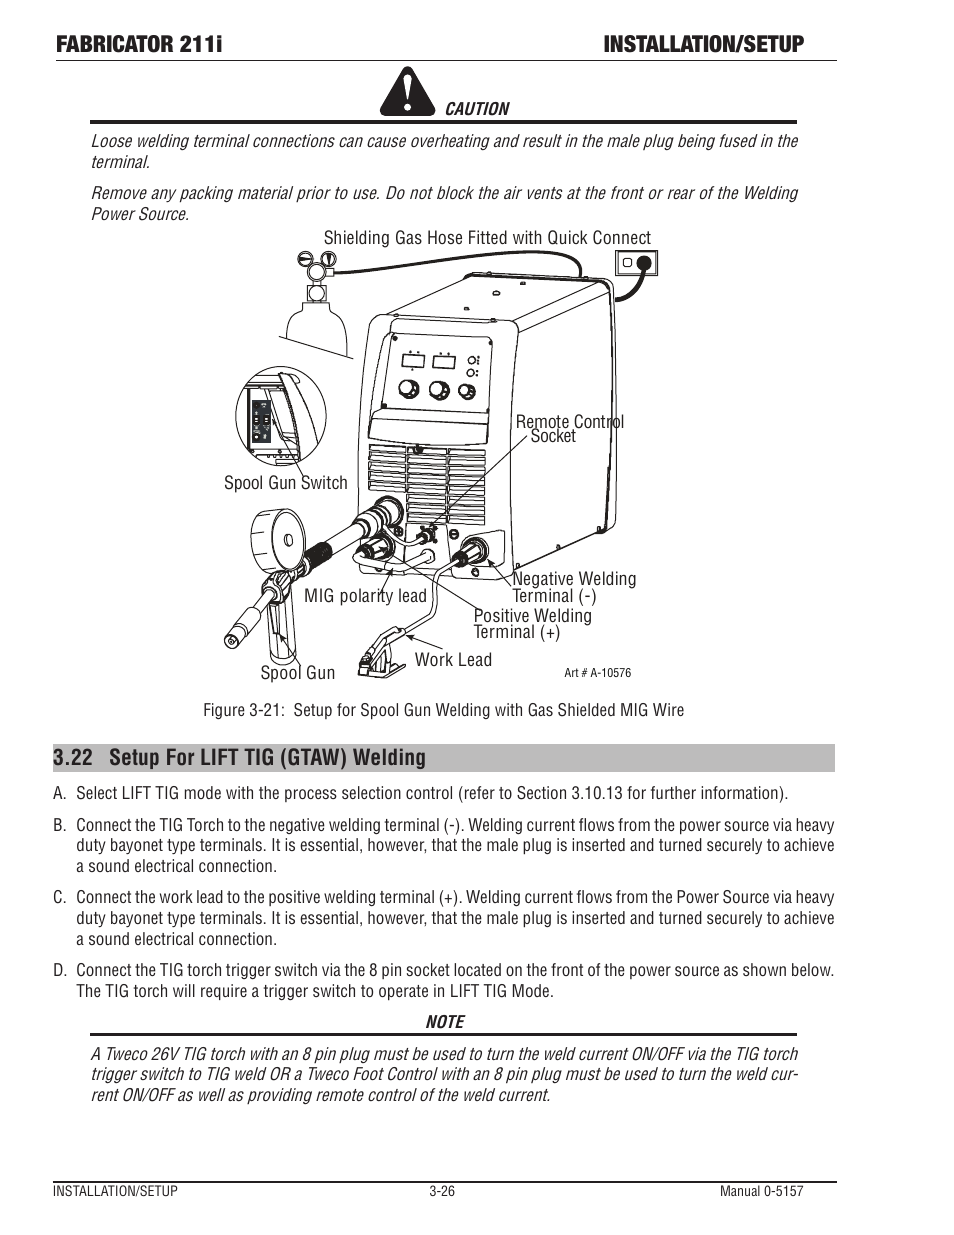 Fabricator 211i Installation Setup 22 For Lift Tig Gtaw Welding Line Diagram Tweco User Manual Page 58 96